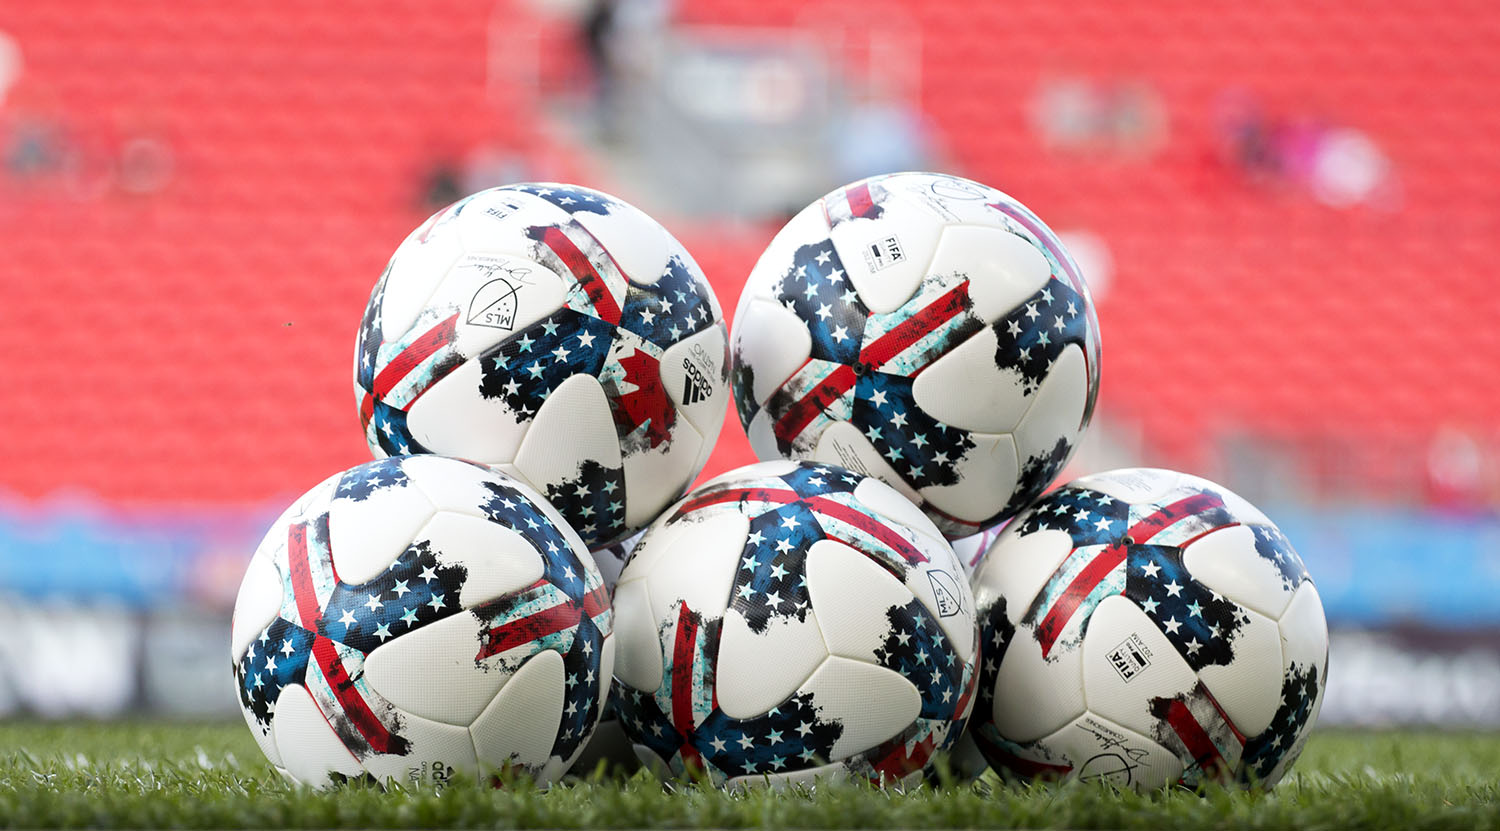 The Adidas MLS 2017 Official Match Ball for Major League Soccer the Navito. Image by Dennis Marciniak of denMAR Media.